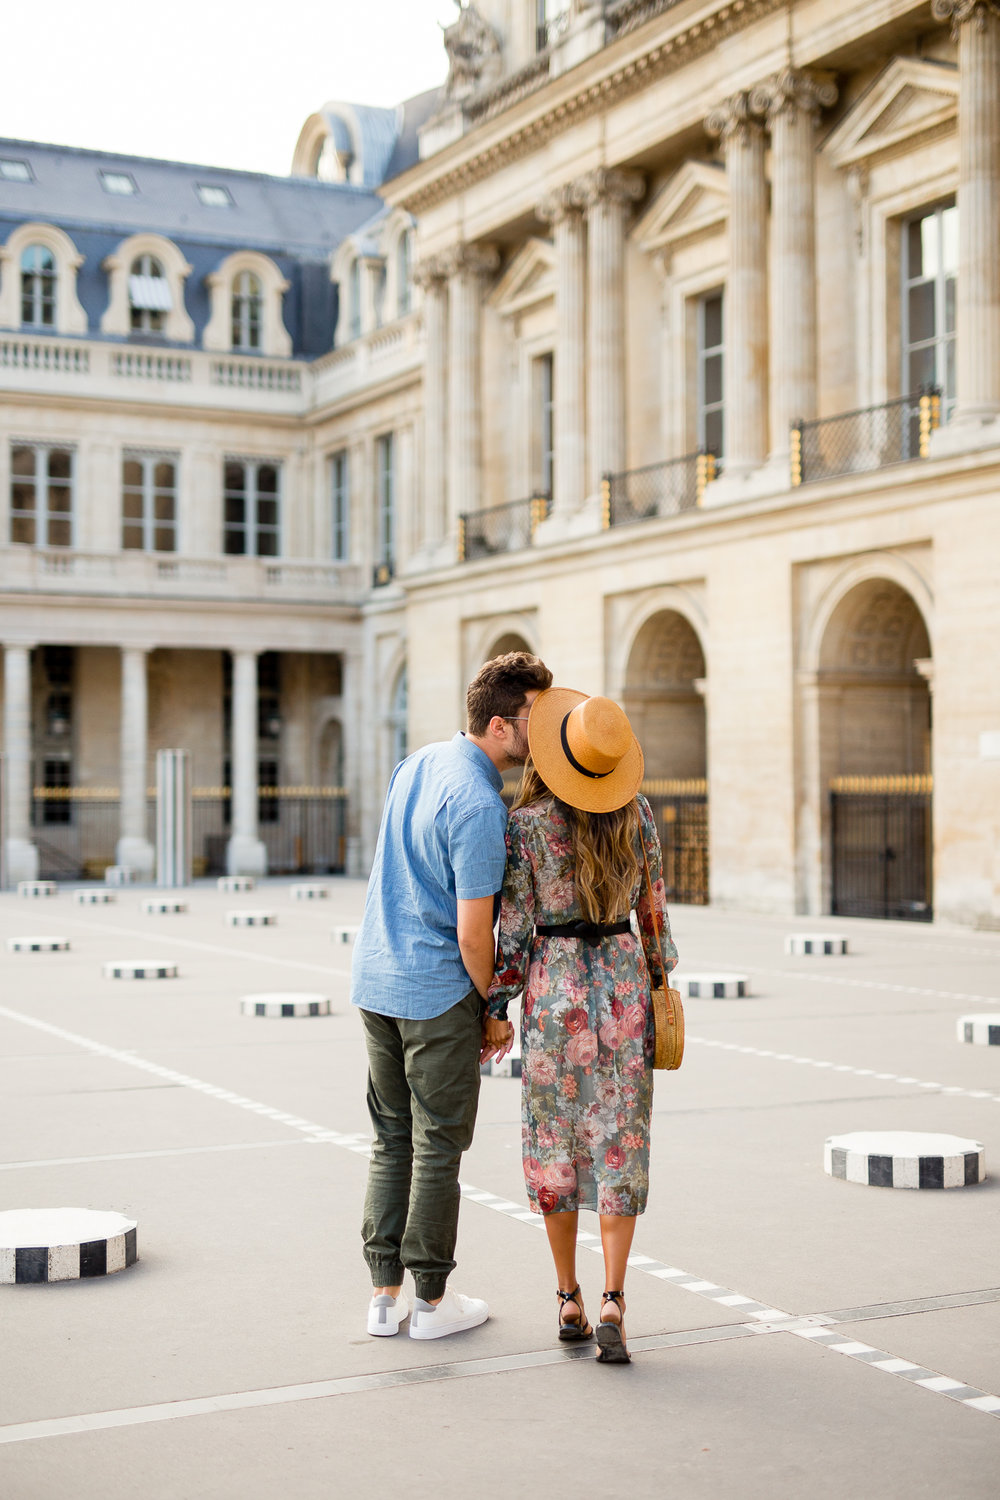 Everyday Pursuits in Paris: Ashley + Andy